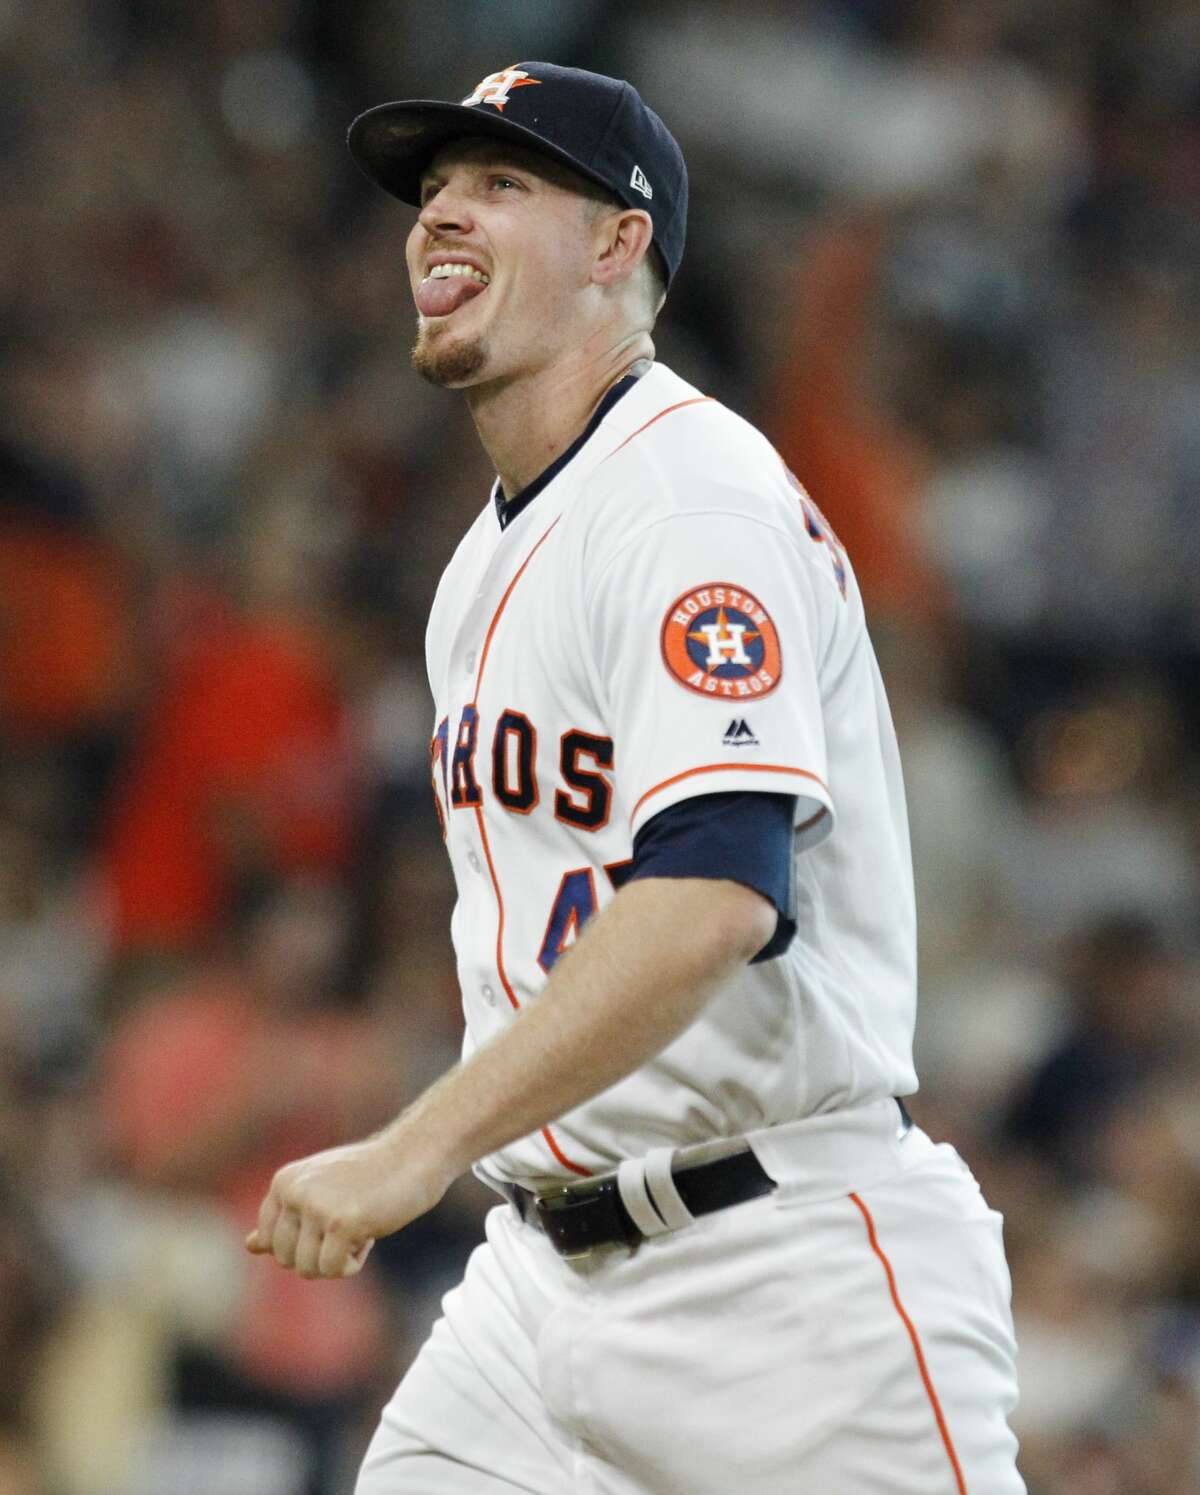 Houston Astros relief pitcher Chris Devenski (47) sticks his tongue out to cheer striking out a Los Angeles Angels player and finishing the bottom eighth inning at Minute Maid Park Saturday, June 10, 2017, in Houston. The Astros defeated Los Angeles Angels 3-1. ( Yi-Chin Lee / Houston Chronicle )